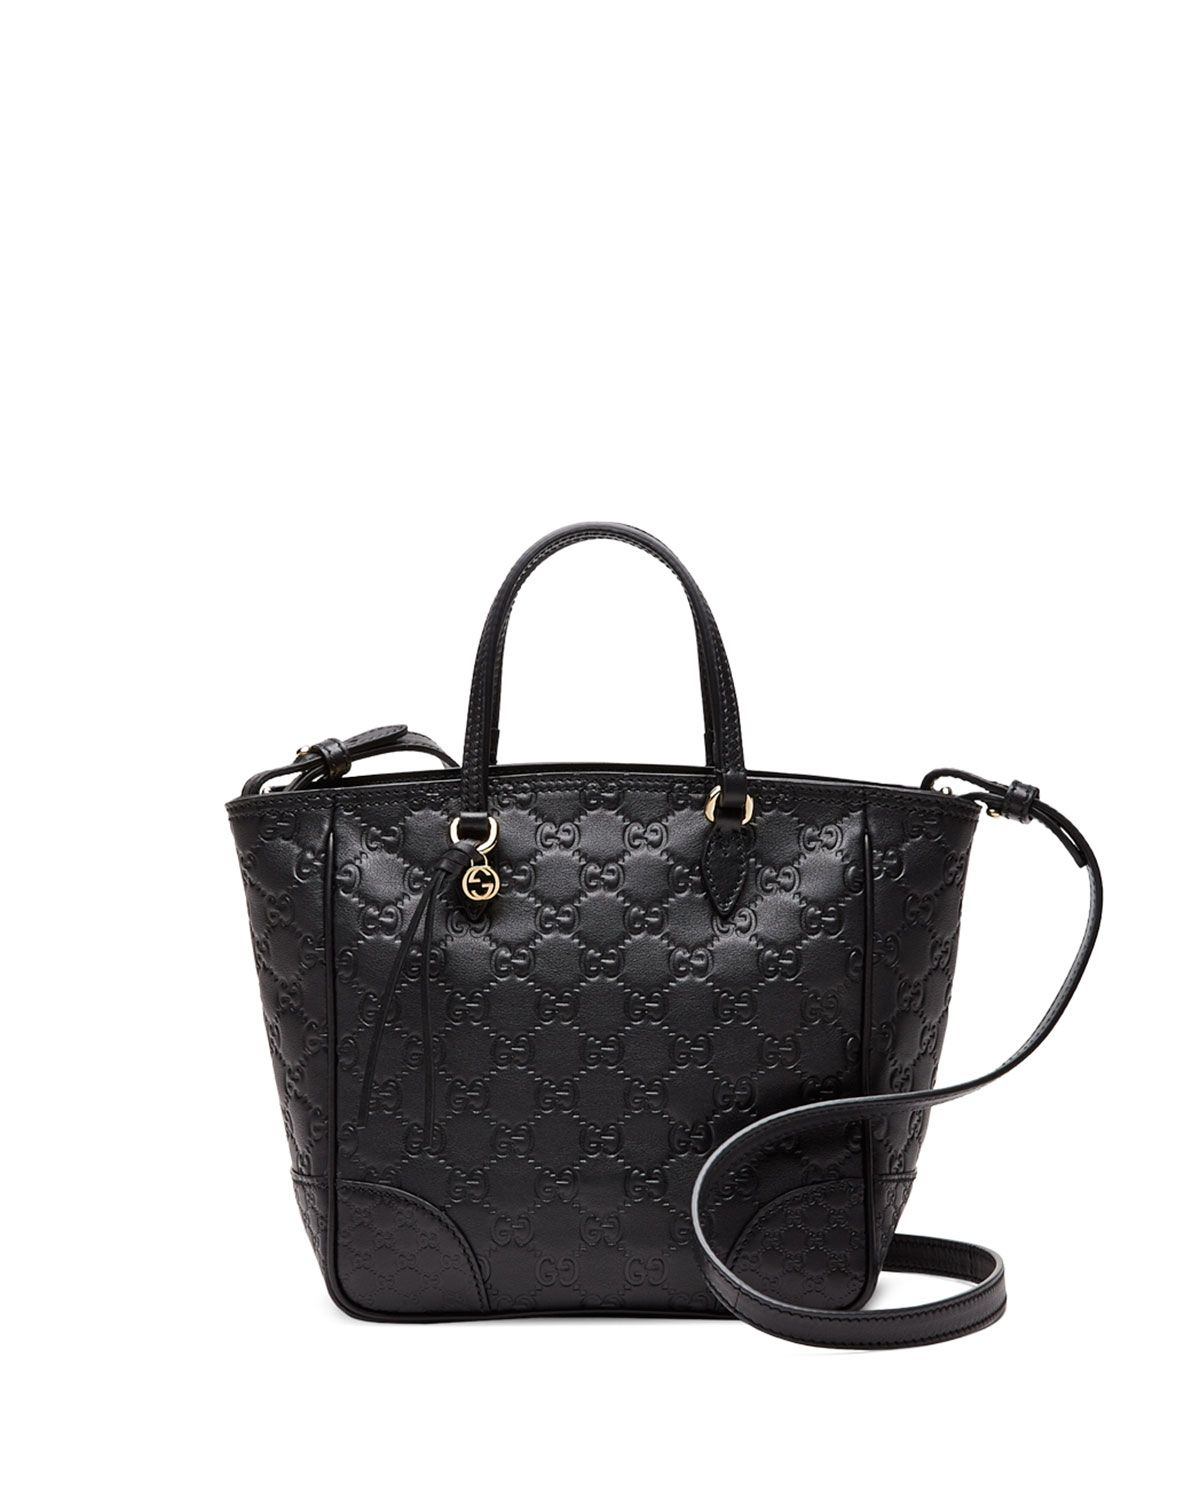 16bb78f8fb07 Bree Small Guccissima Tote Bag, Black | Products | Pinterest | Tote ...